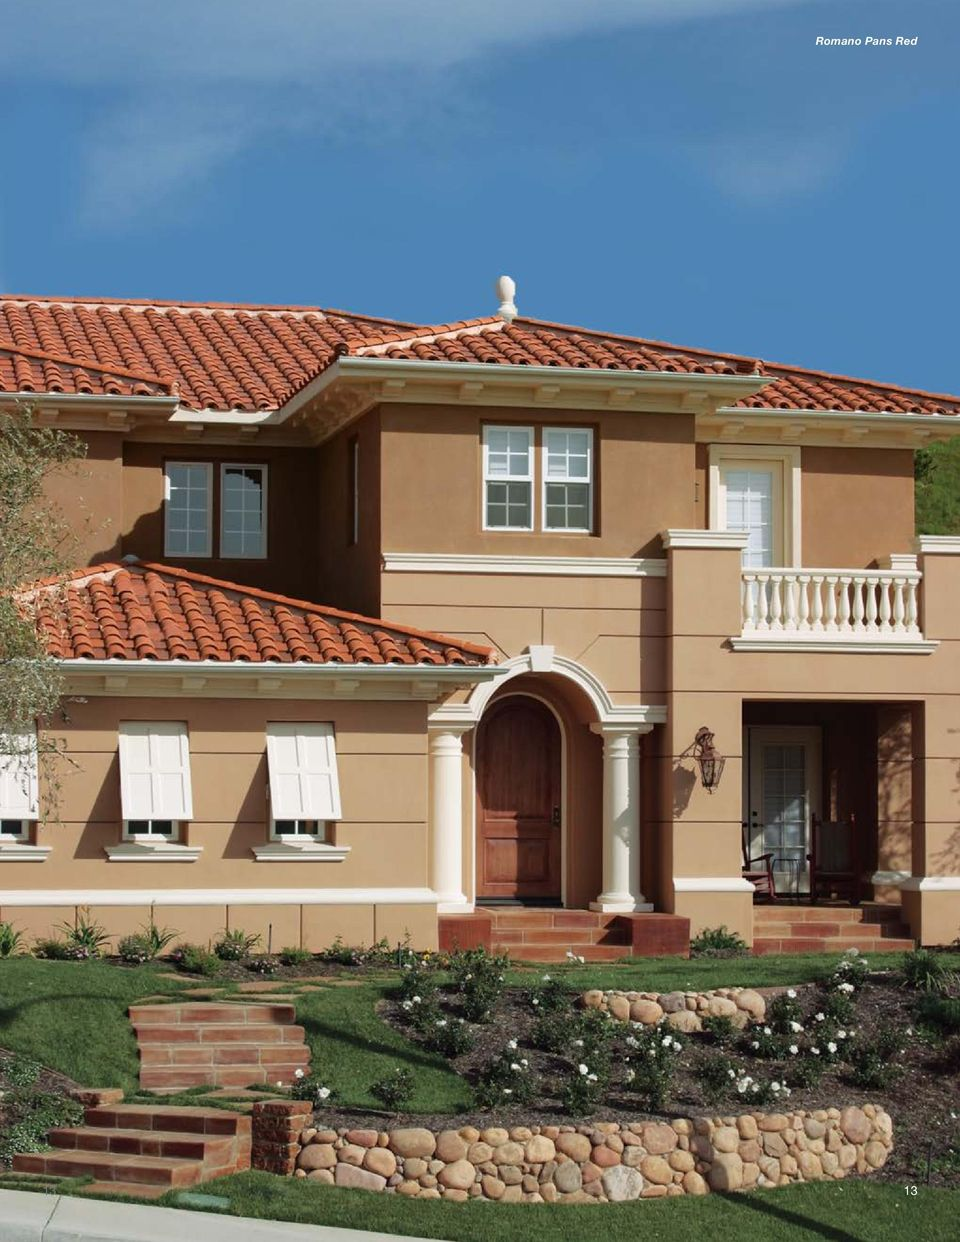 Boral Roofing Build Something Great Clay Roof Tiles